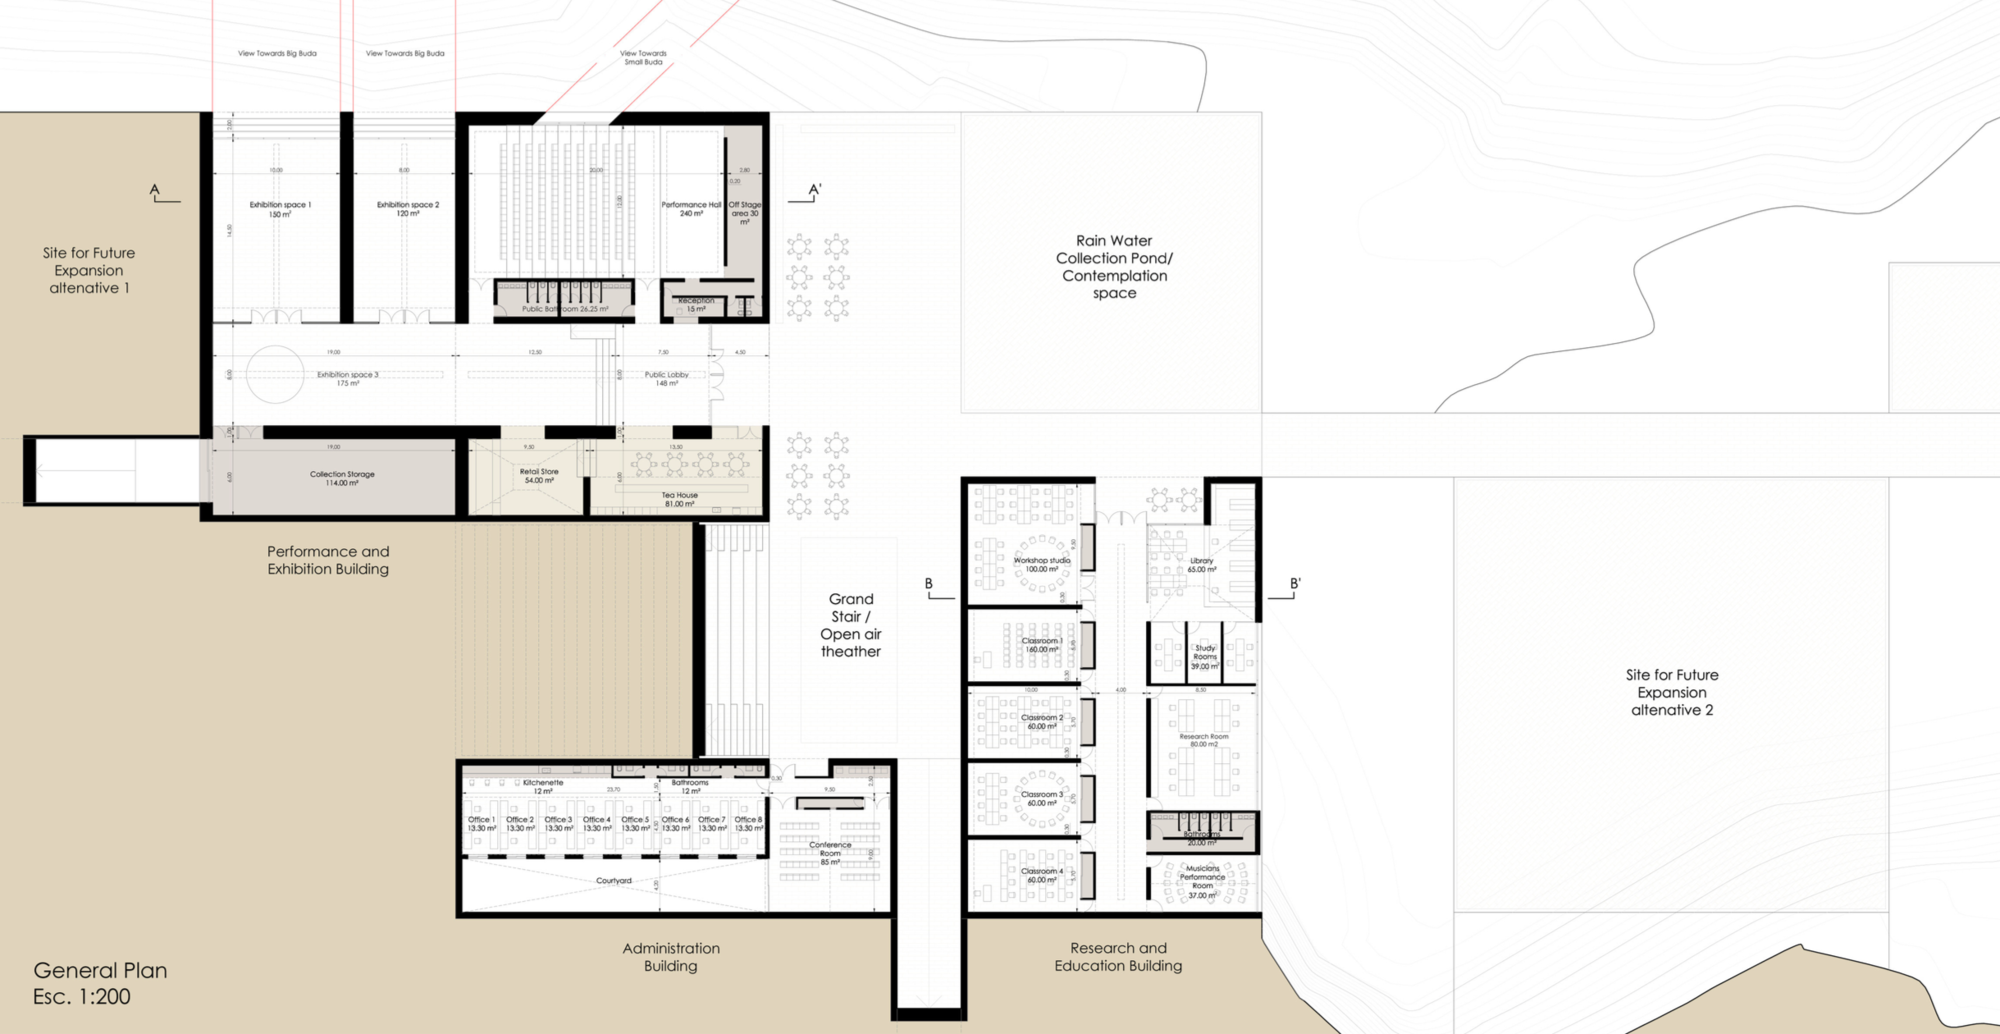 Winning Entry: Ground Floor Plan. Image Courtesy of UNESCO